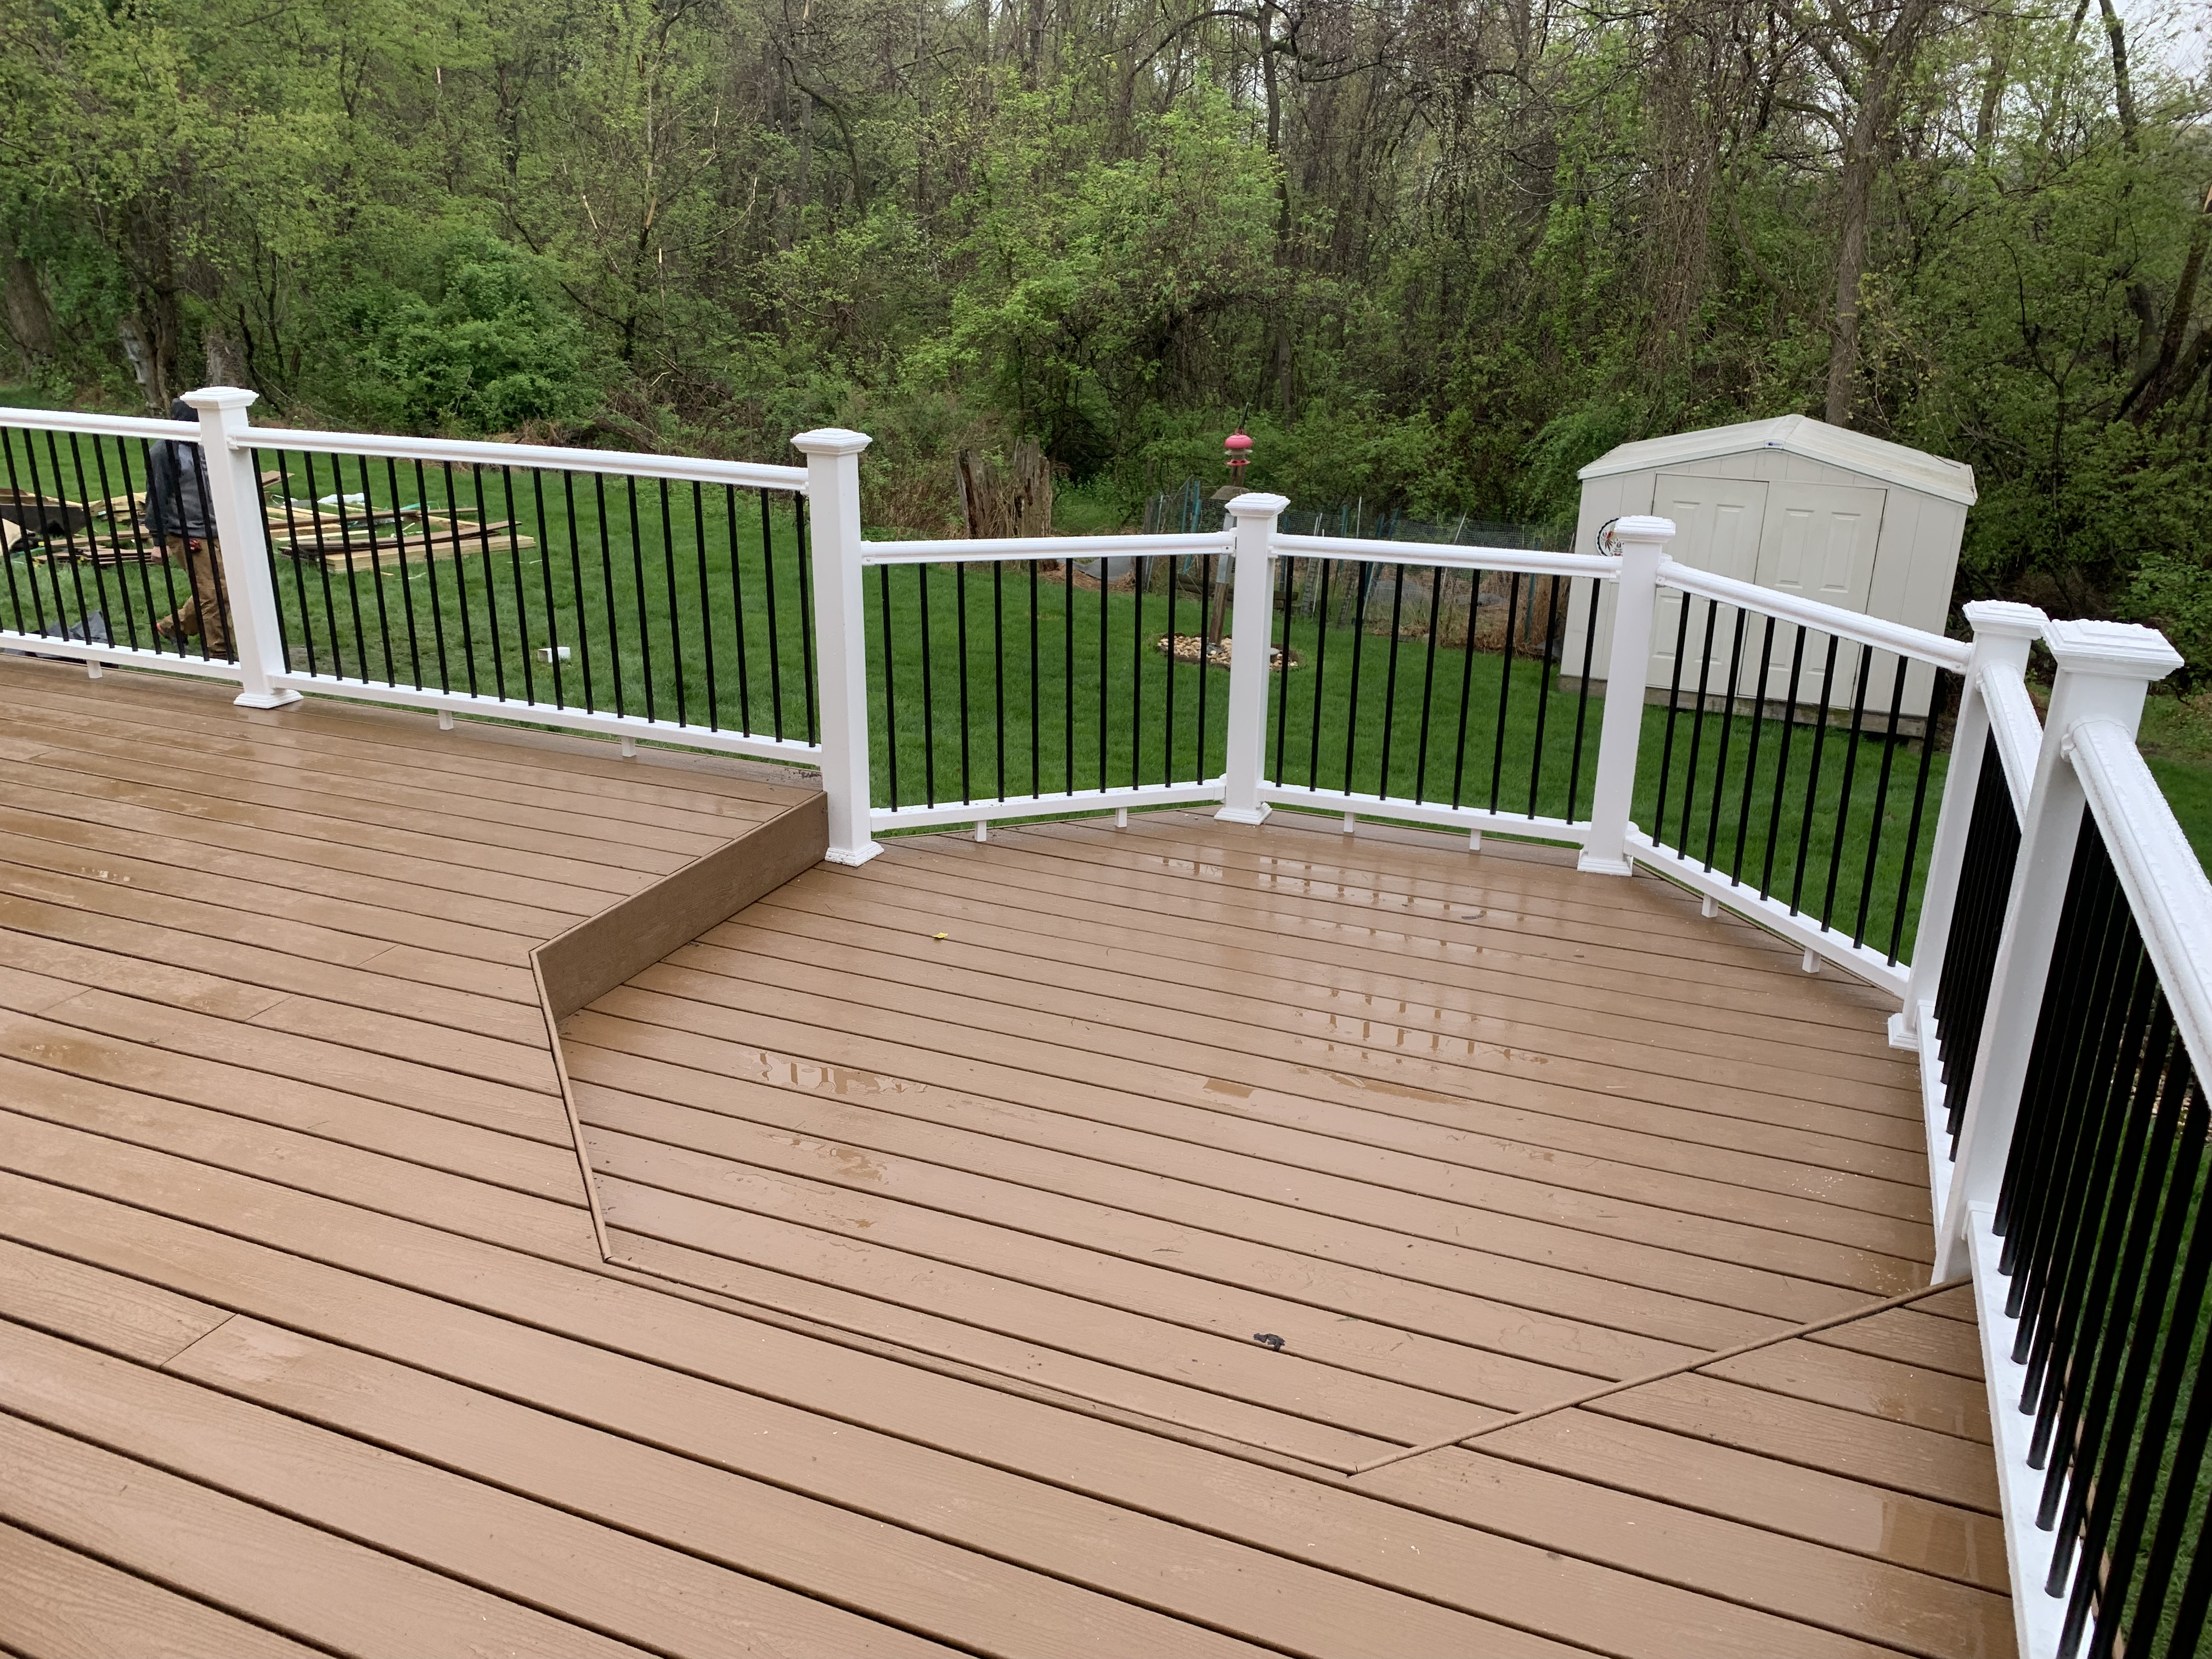 Resurfacing services can make your old deck look new again